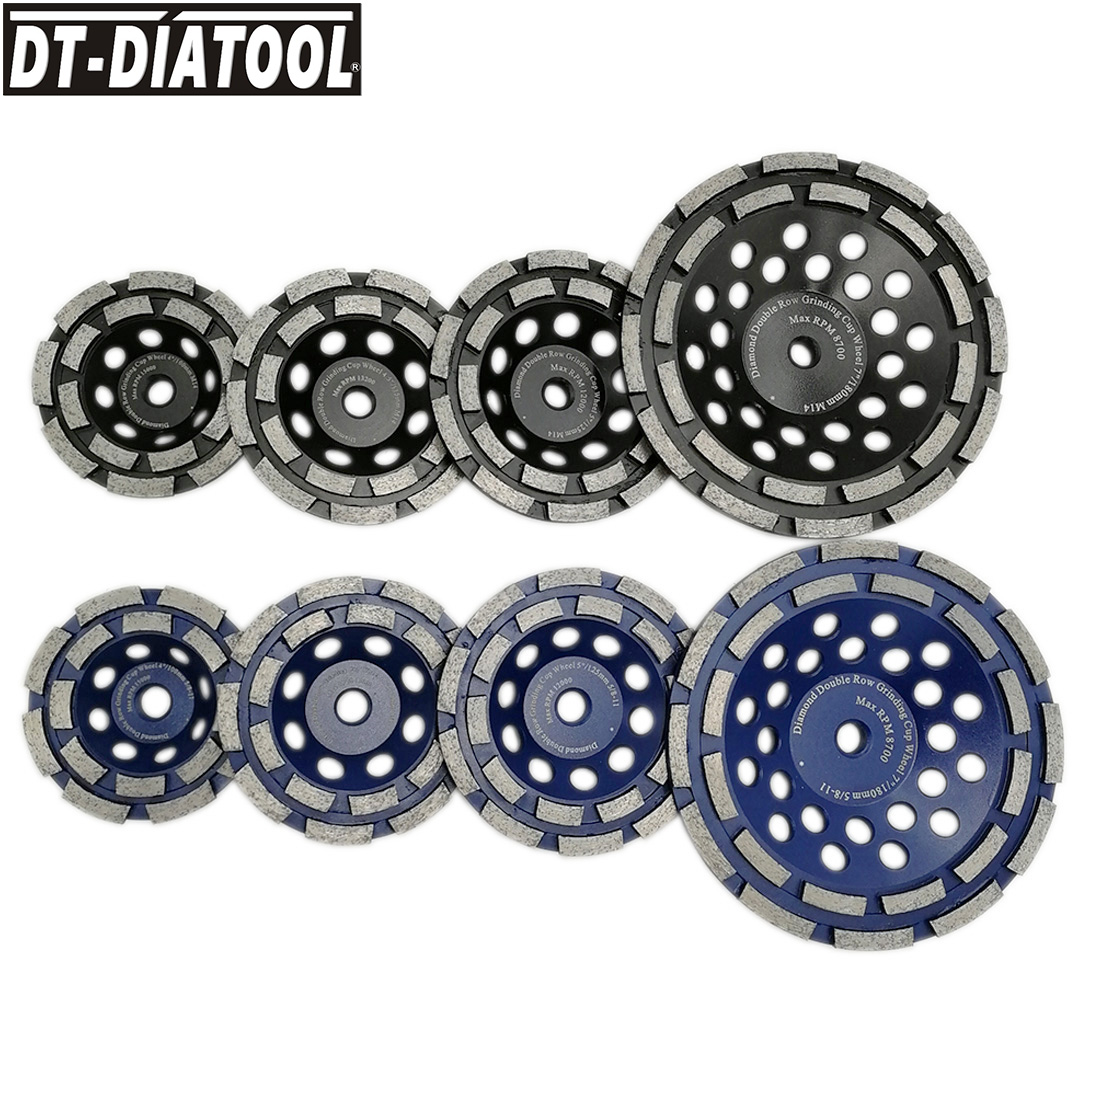 1pc Diameter 100/115/125/180mm Diamond Double Row Cup Grinding Wheel for Concrete Hard Stone Granite Marble M14 or 5/8-11 thread dt diatool 2pcs dia 7 double row diamond grinding cup wheel with 5 8 11 thread for concrete hard stone granite dia 7inch 180mm